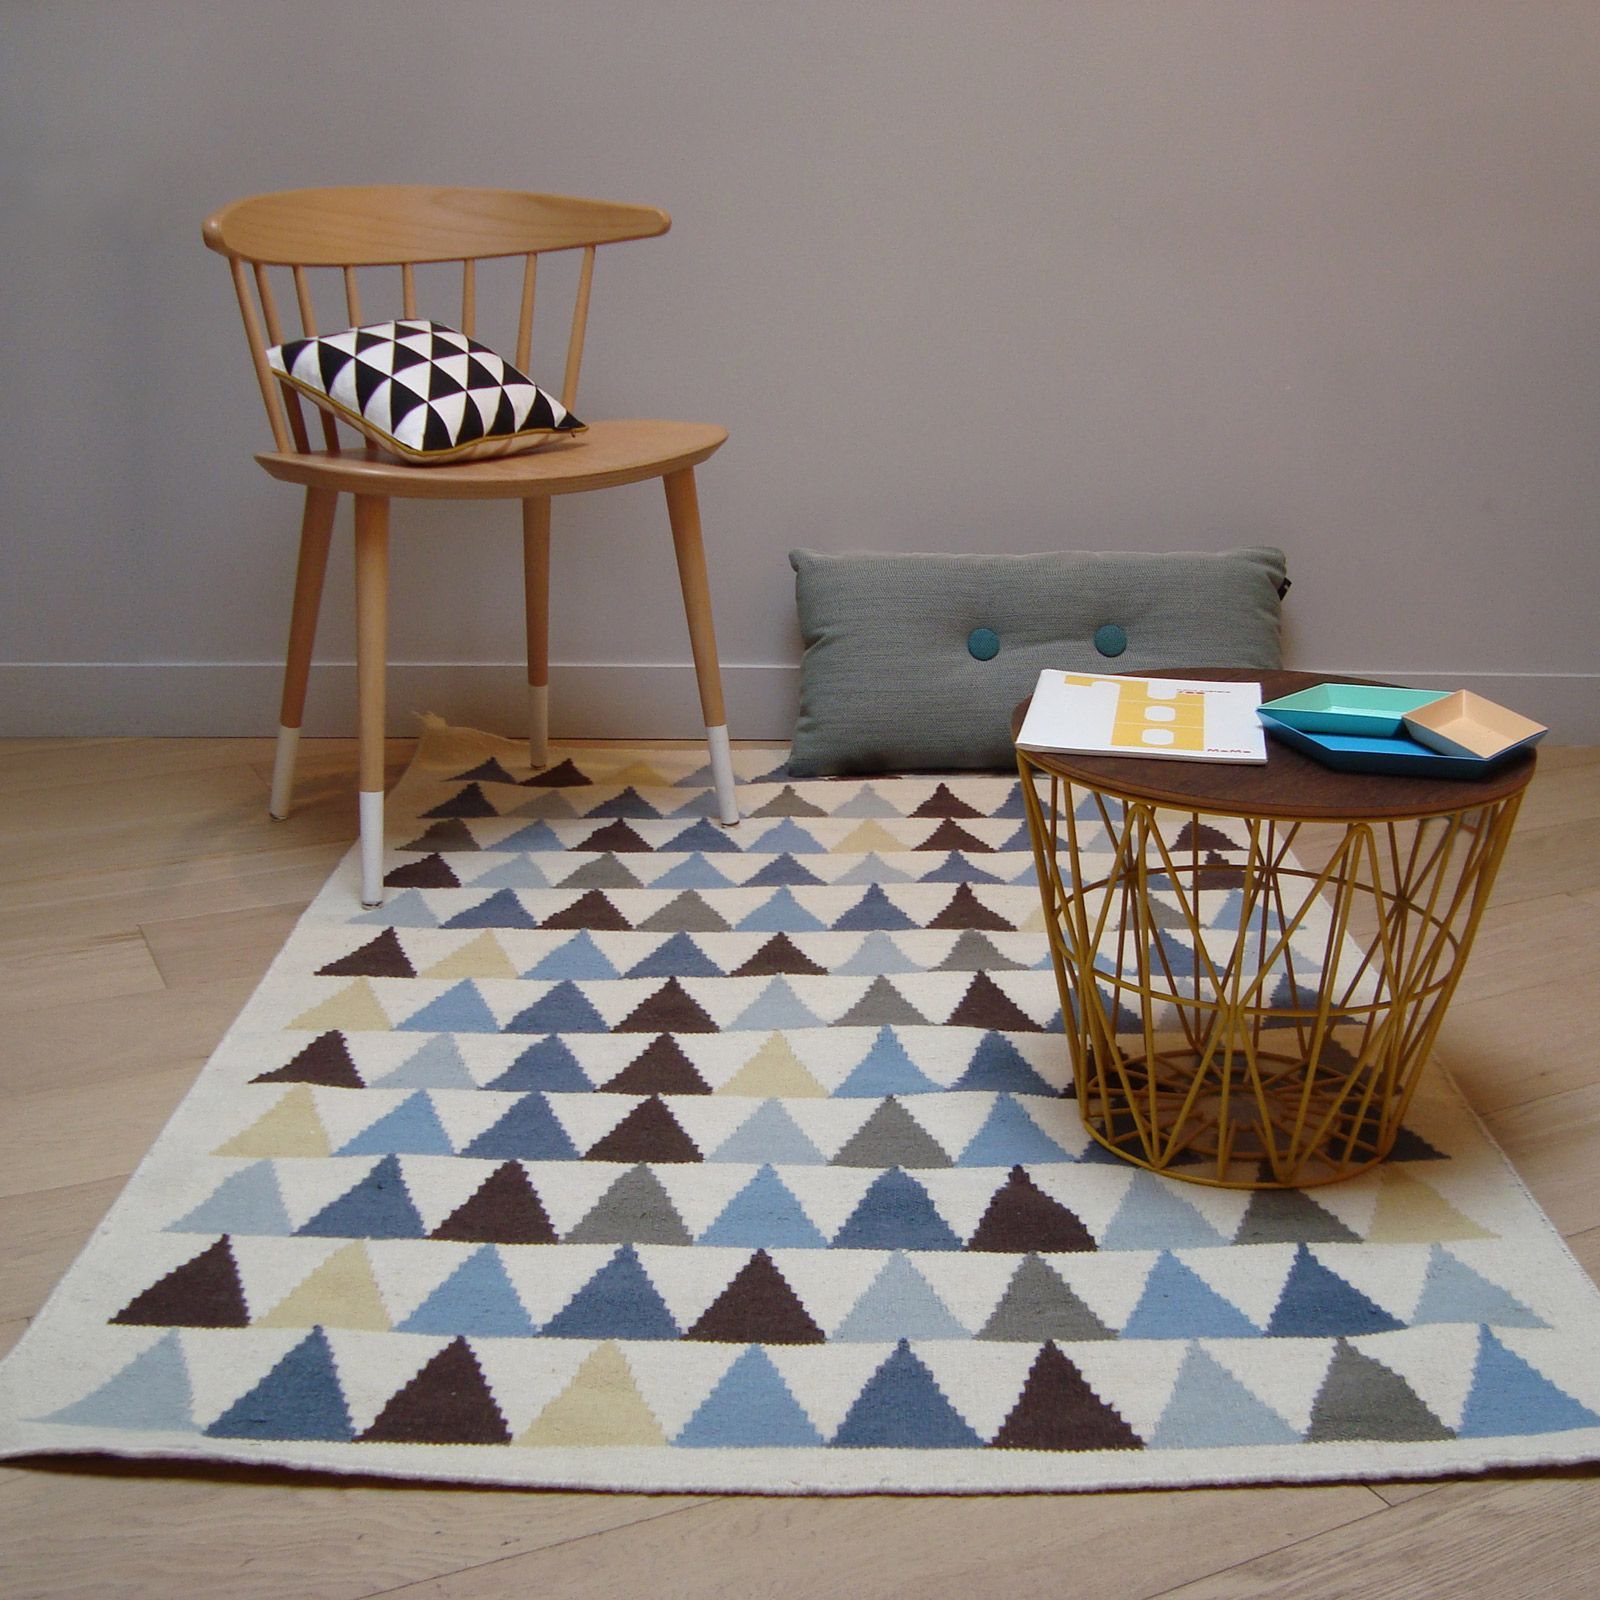 Tapis gar§on Kilim bleu triangles 110 x 160 cm Art for Kids